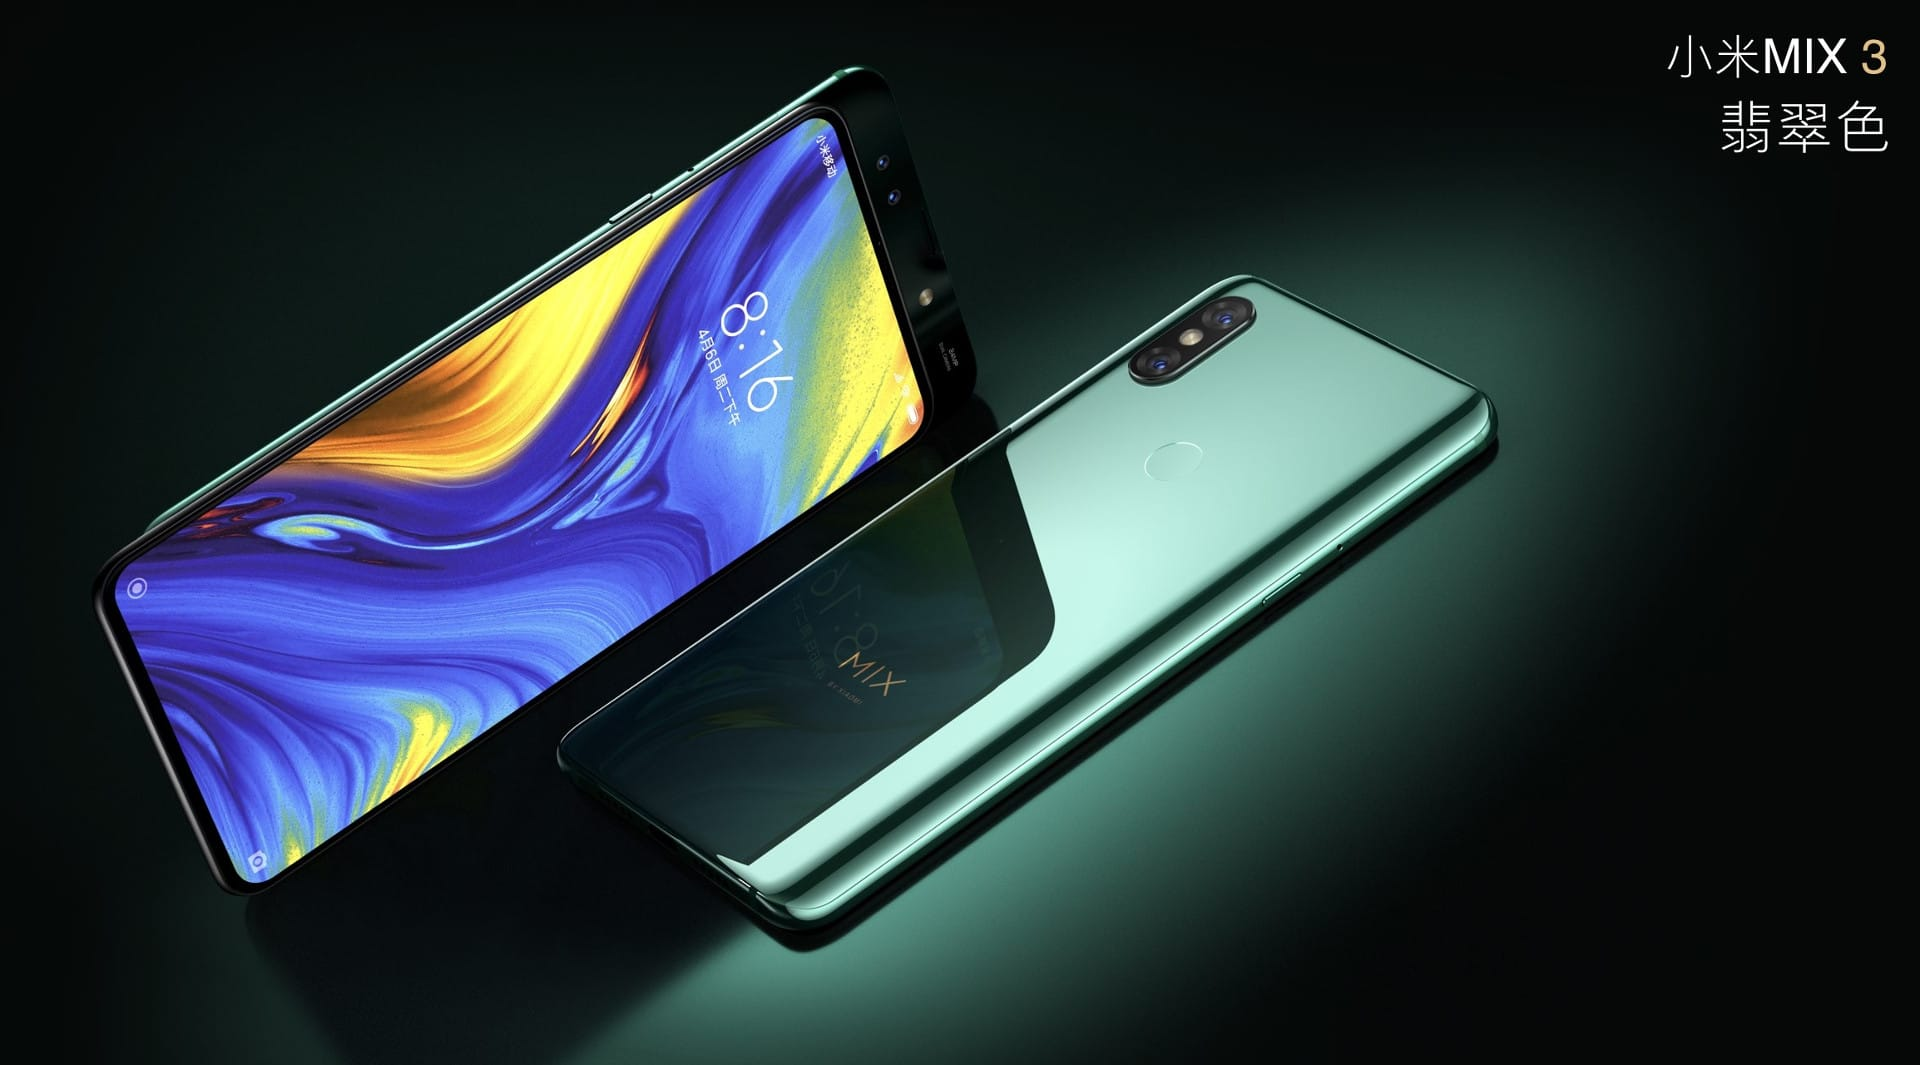 Xiaomi's Much Anticipated Mi Mix 3 is here, With a Slider